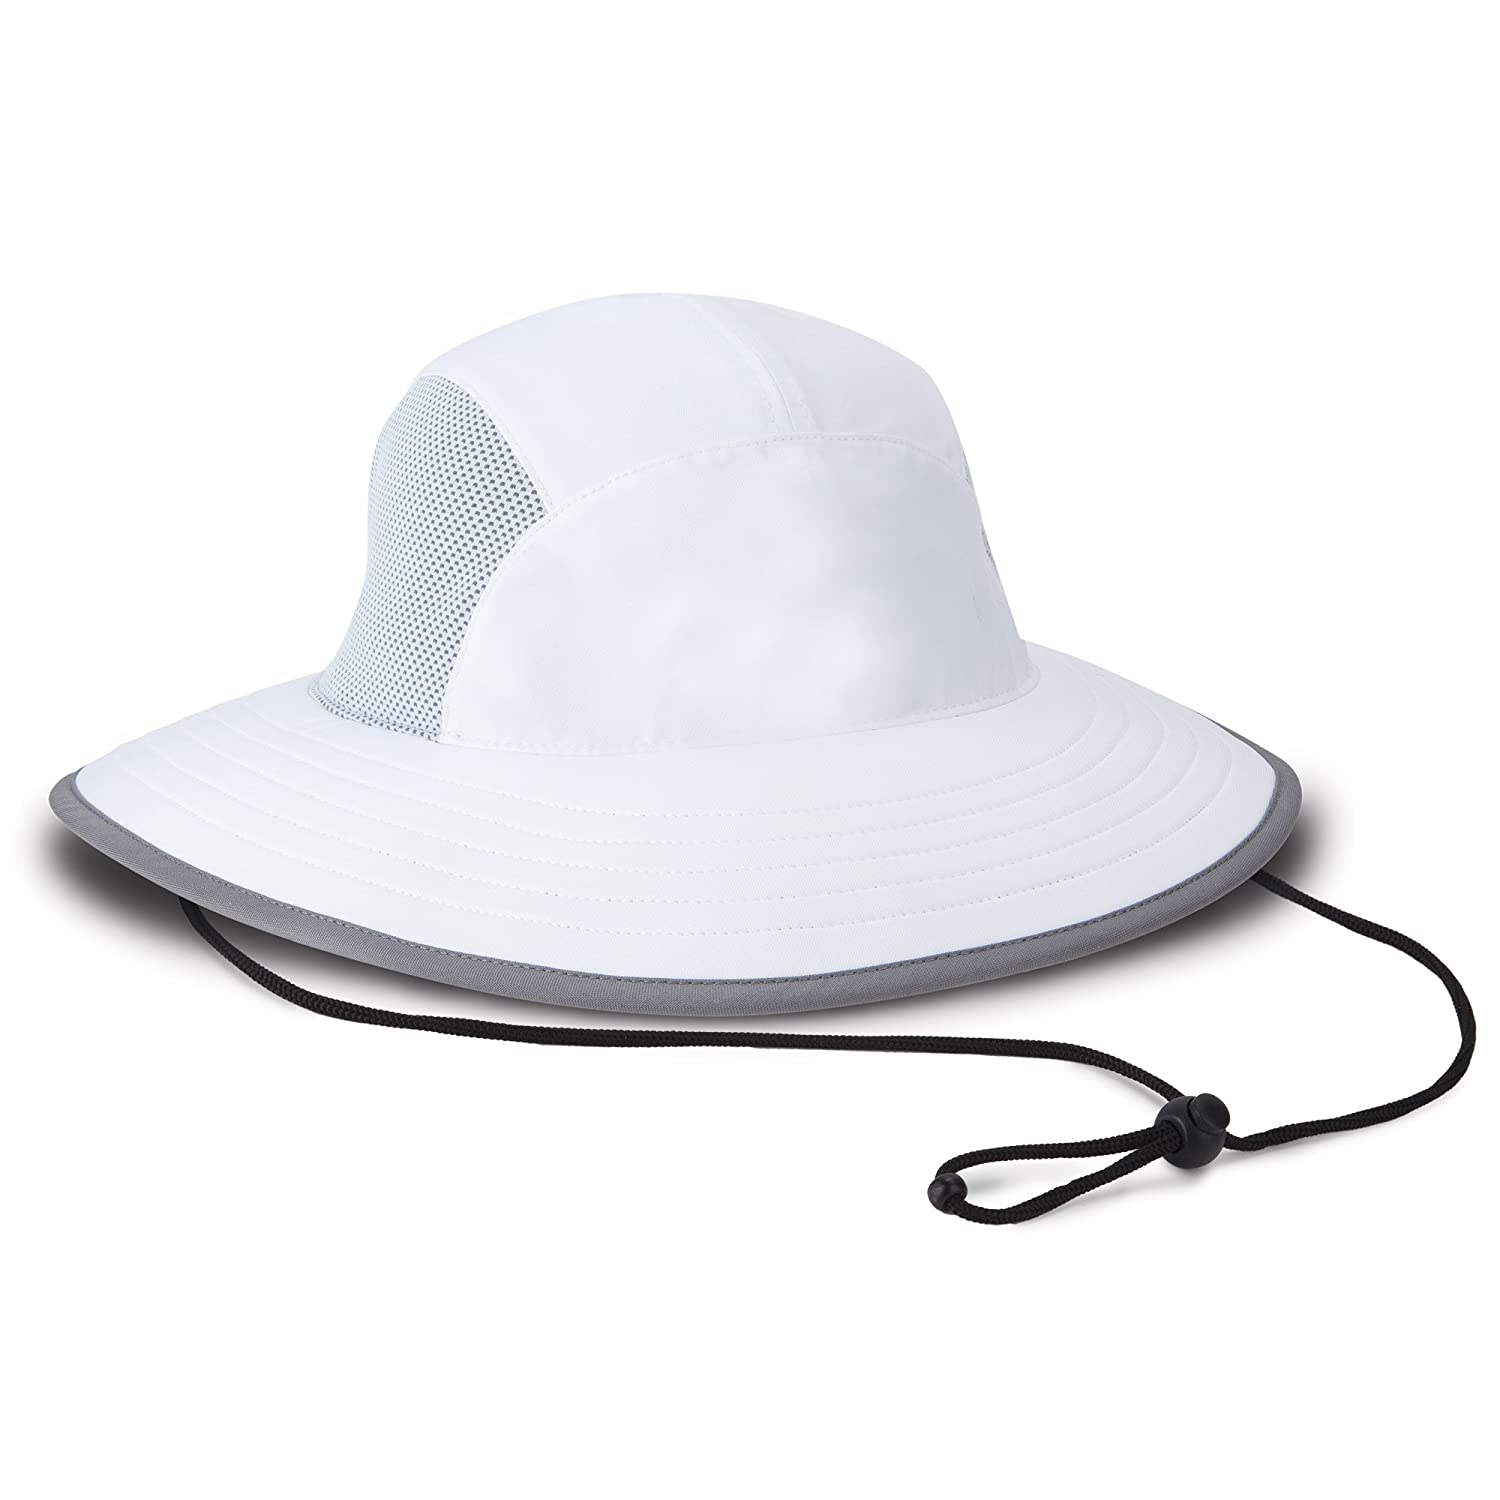 Imperial Coolcore Old Norse Bucket Hat 4ae1ee89f3b